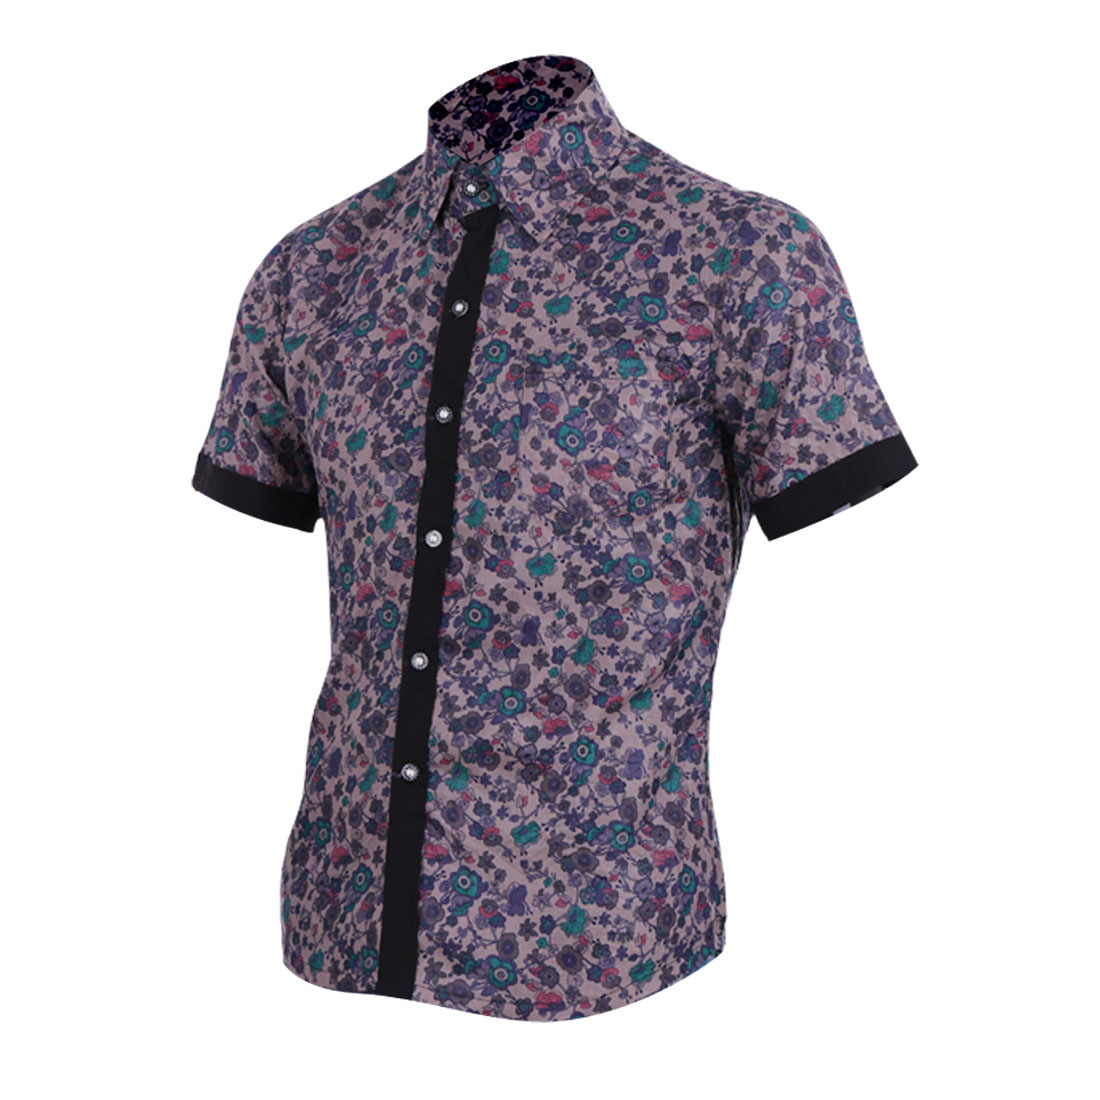 Men Point Collar Short Sleeve Floral Prints Shirt Purple Gray S